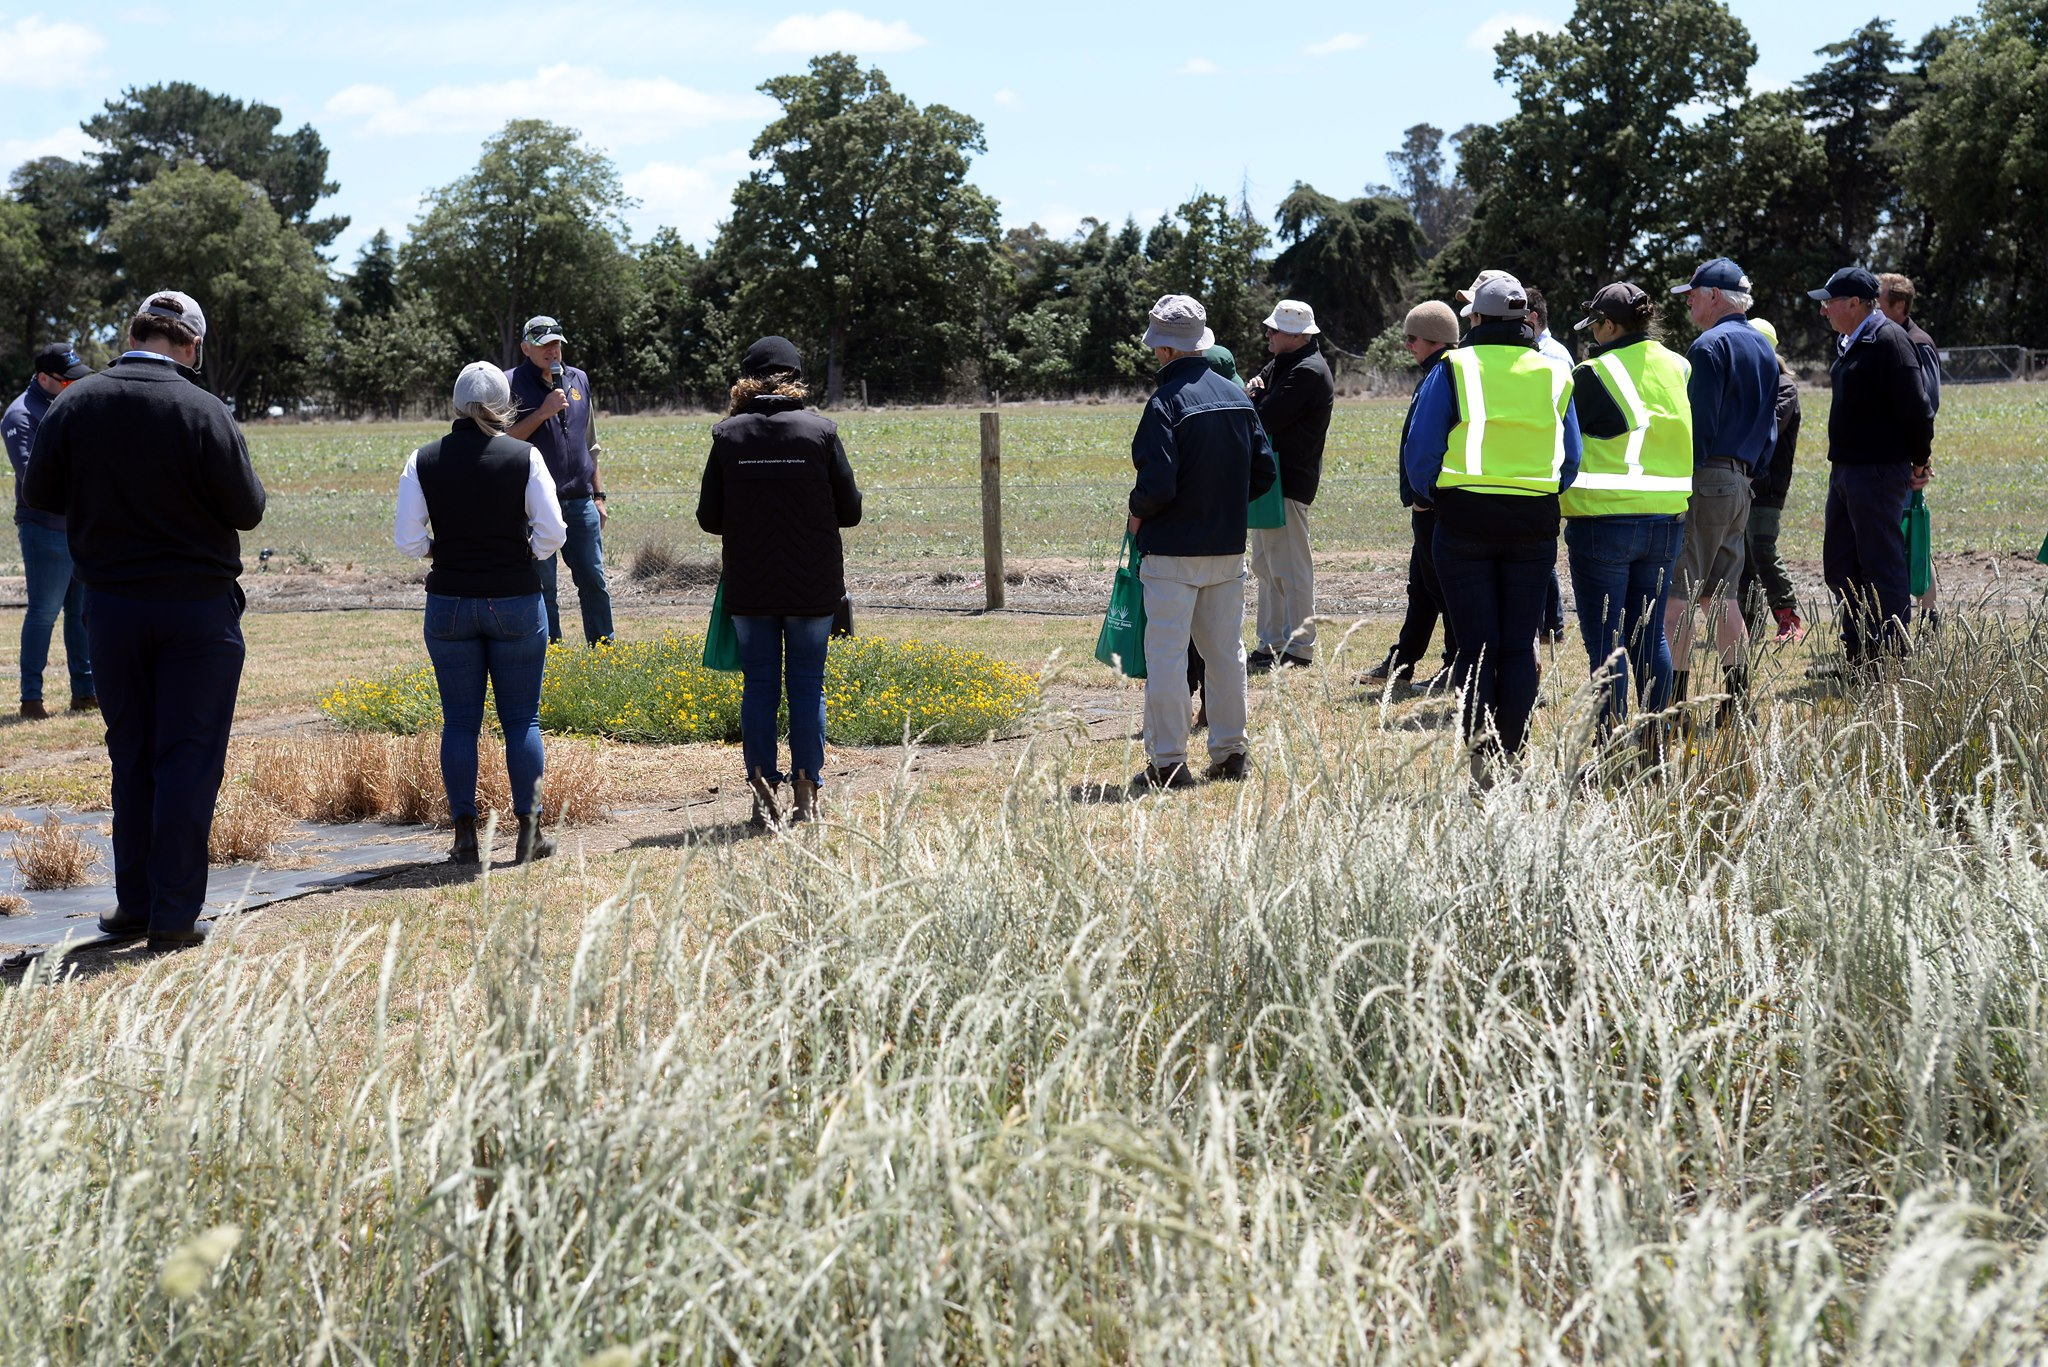 Group of people inspecting pasture